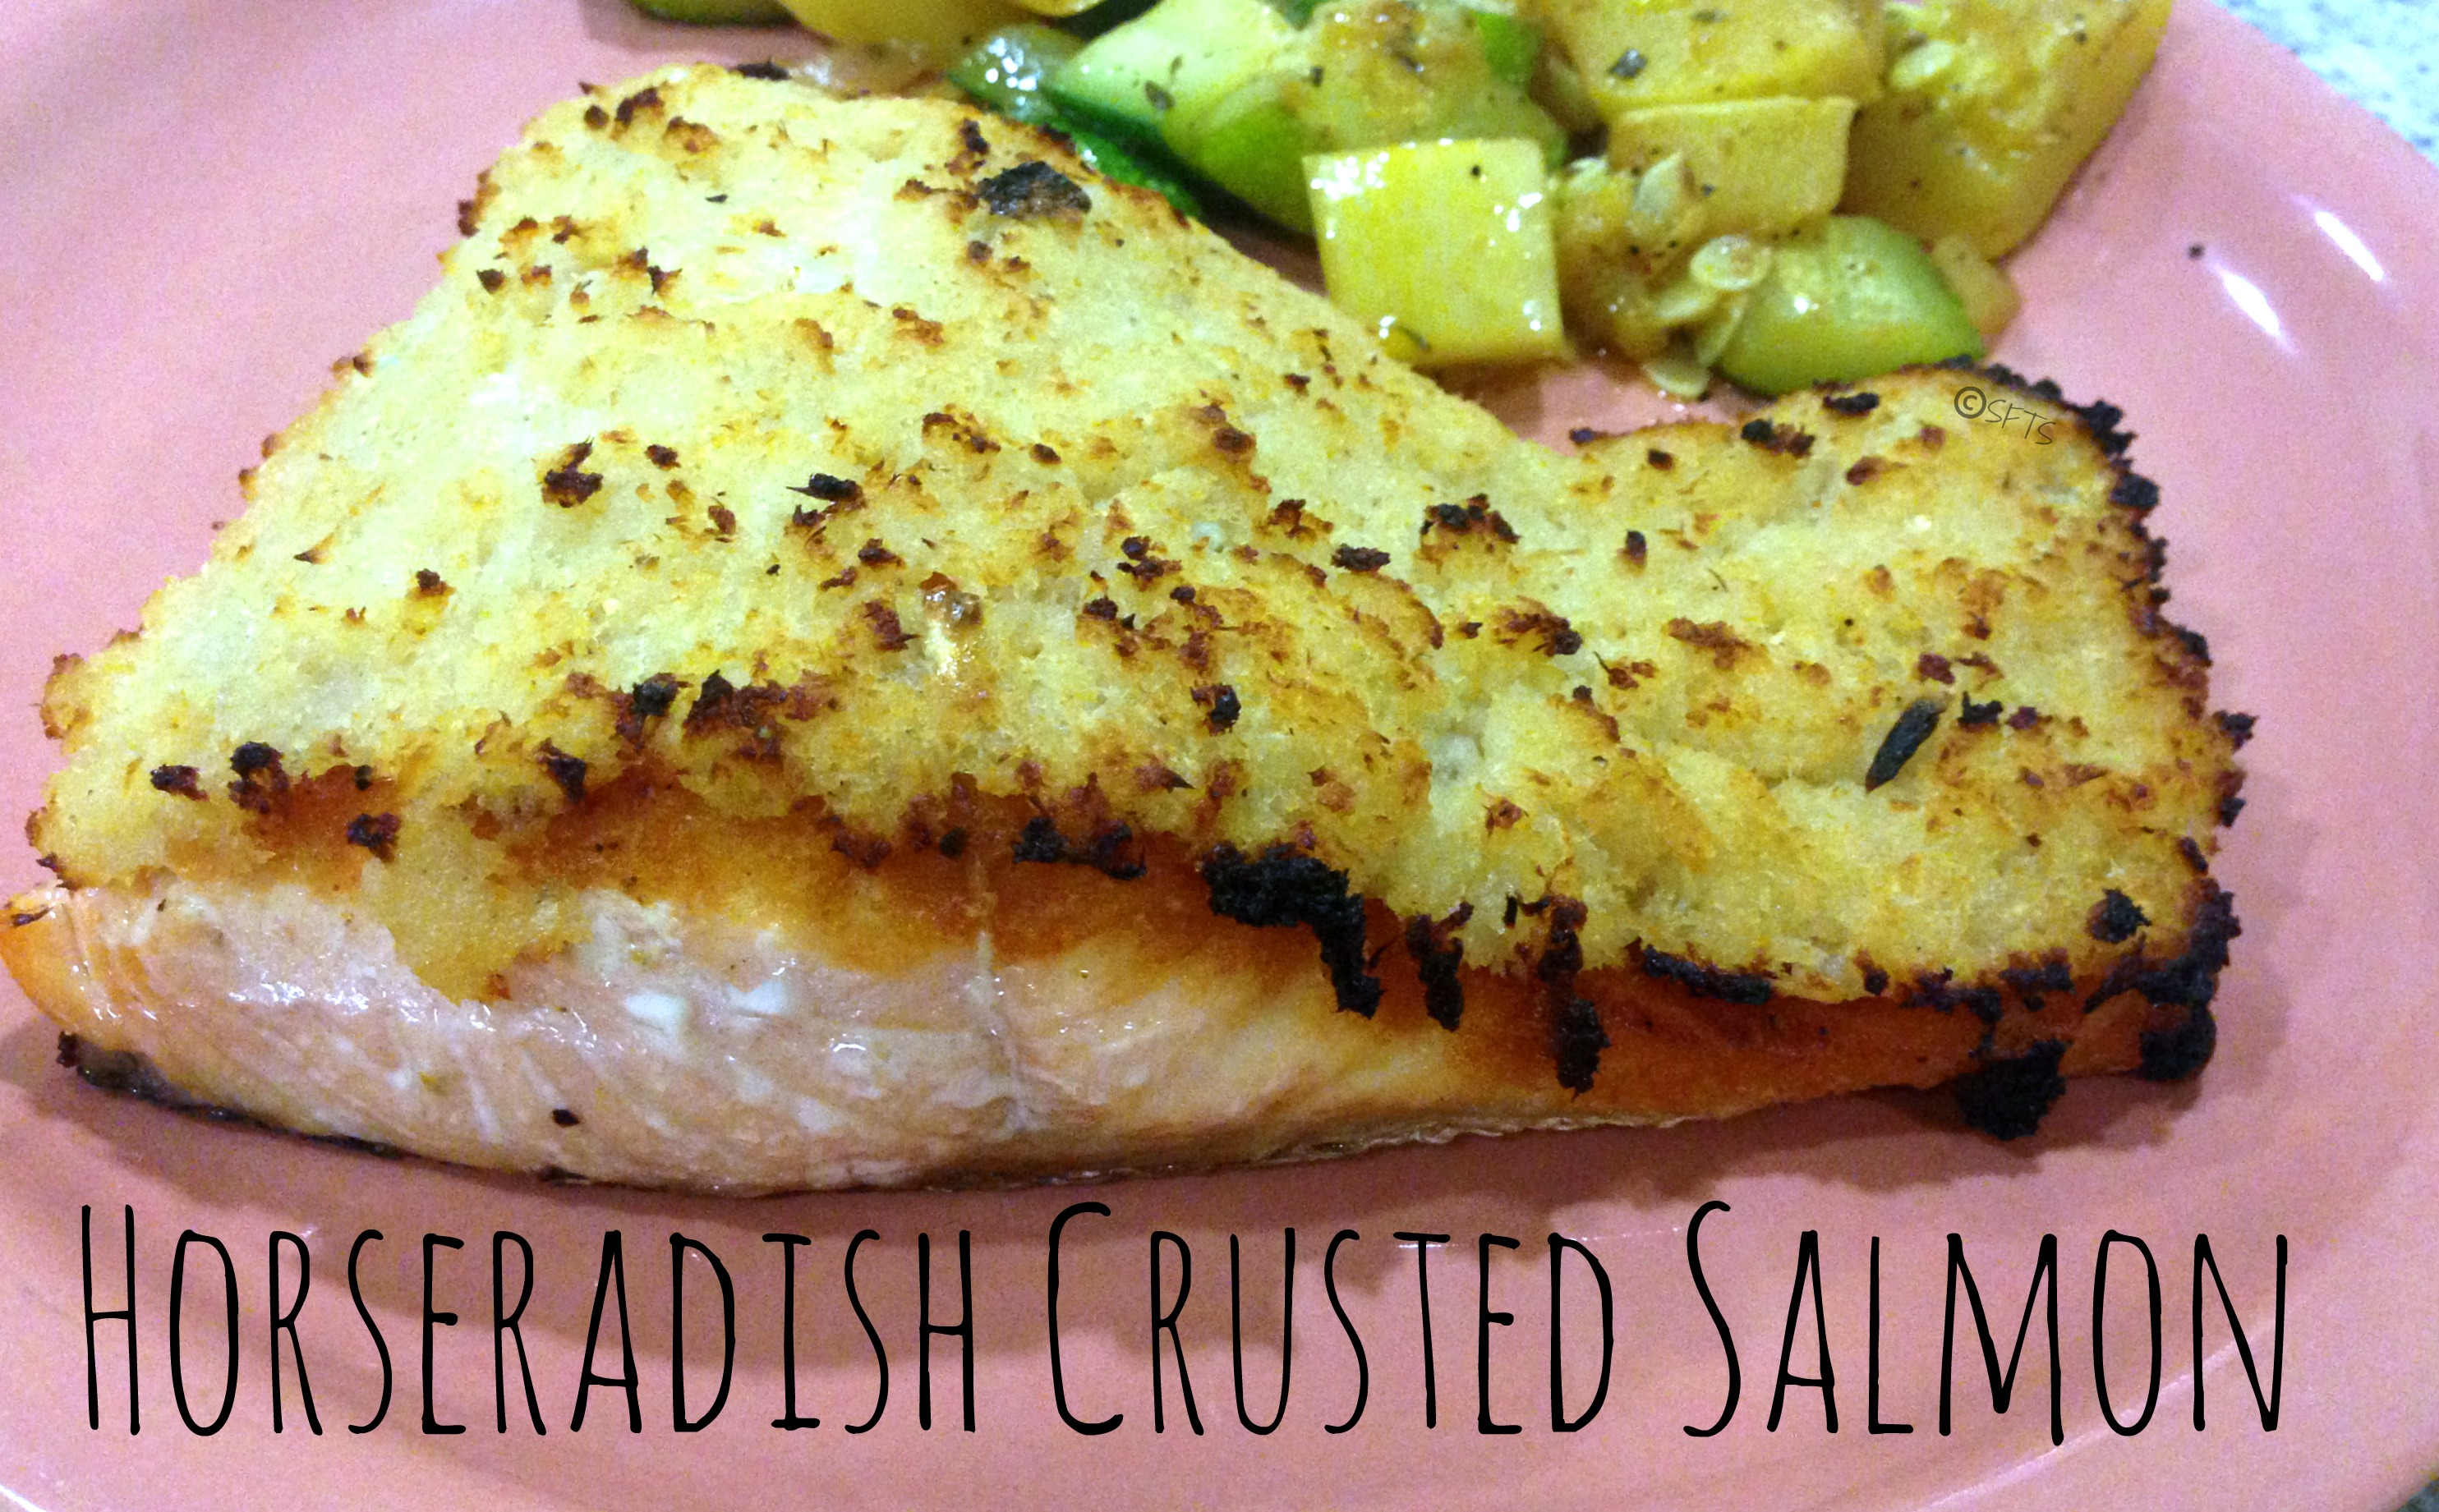 Salmon Fillets with Horseradish Crust Cucumbers and